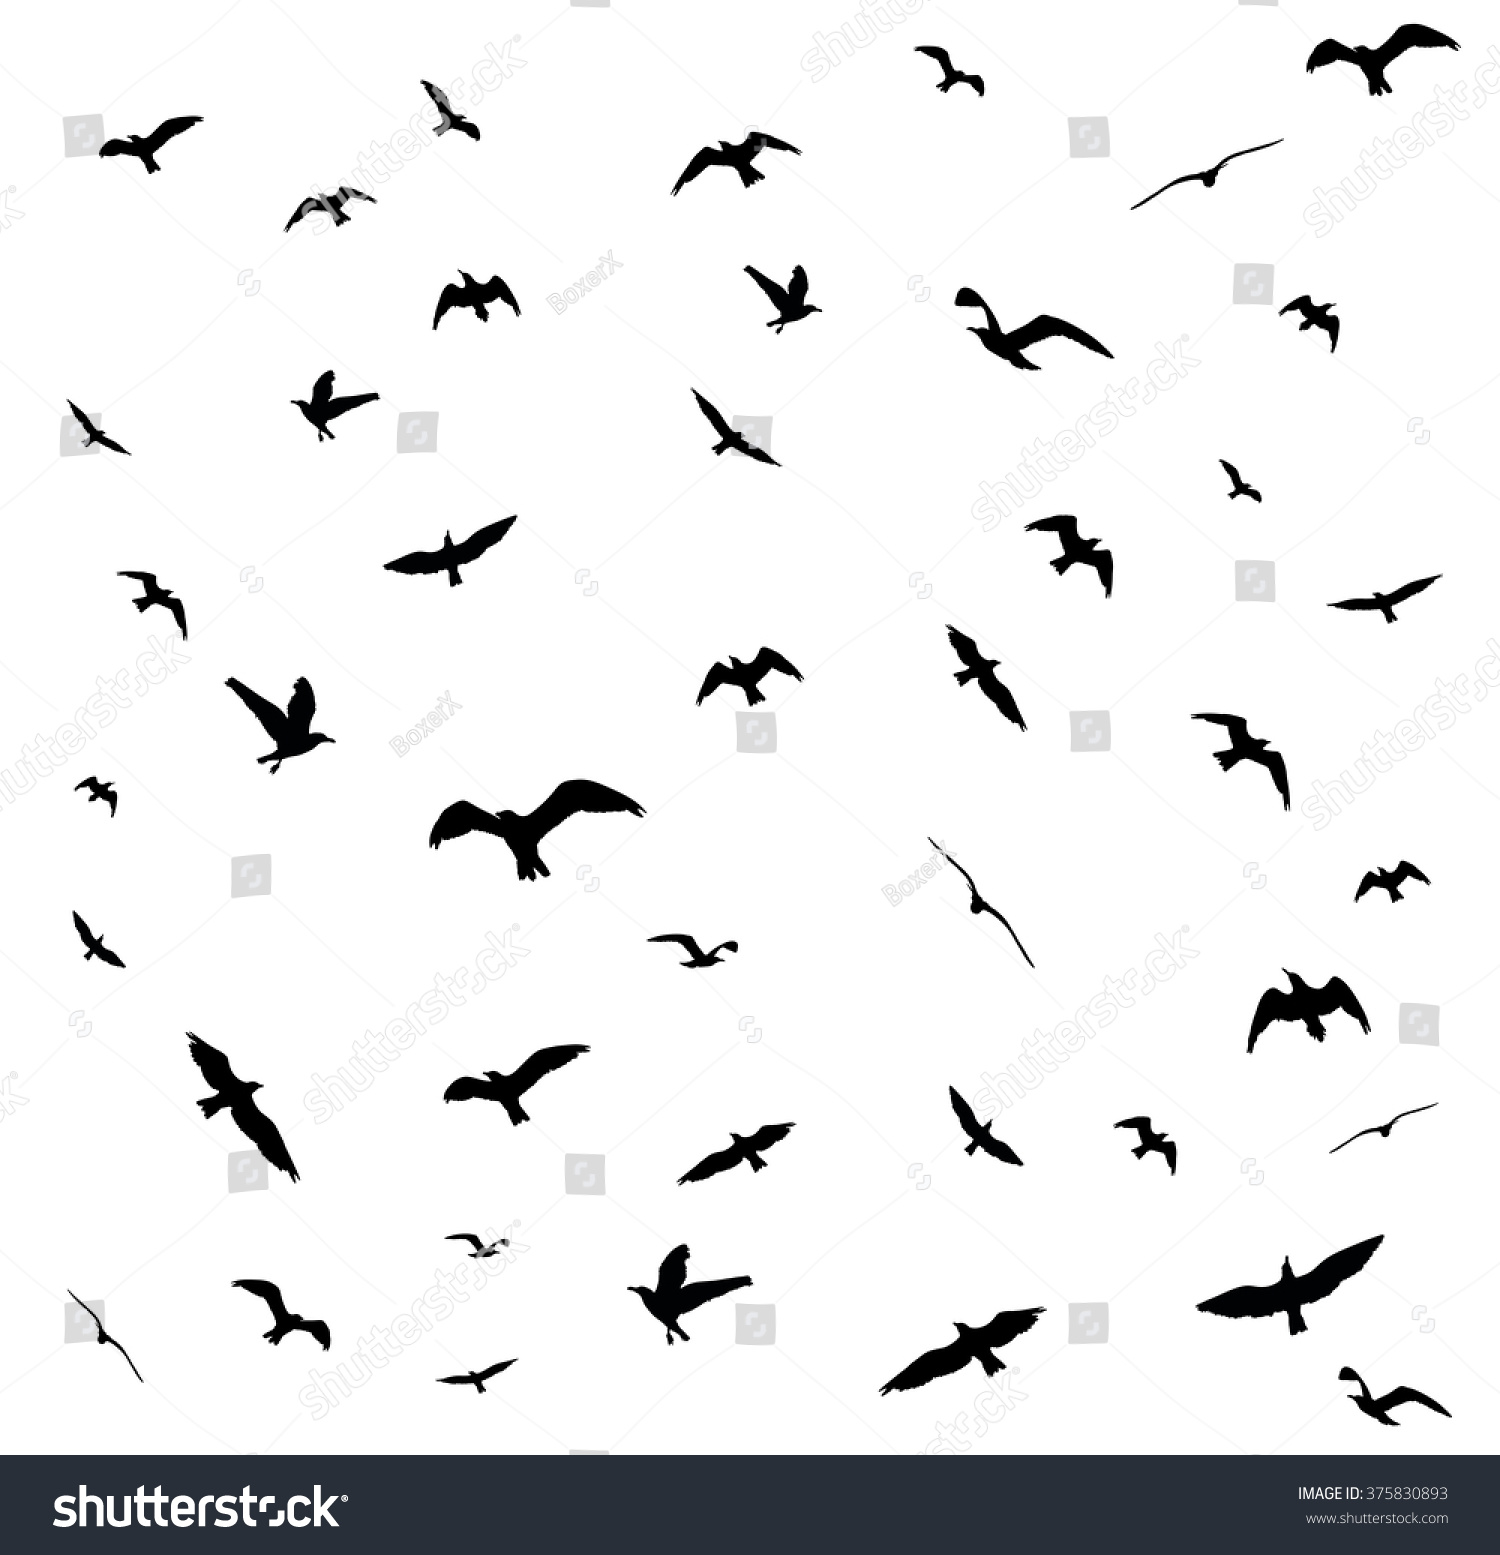 Stock Vector Flying Birds Silhouettes On White Background Vector Illus...